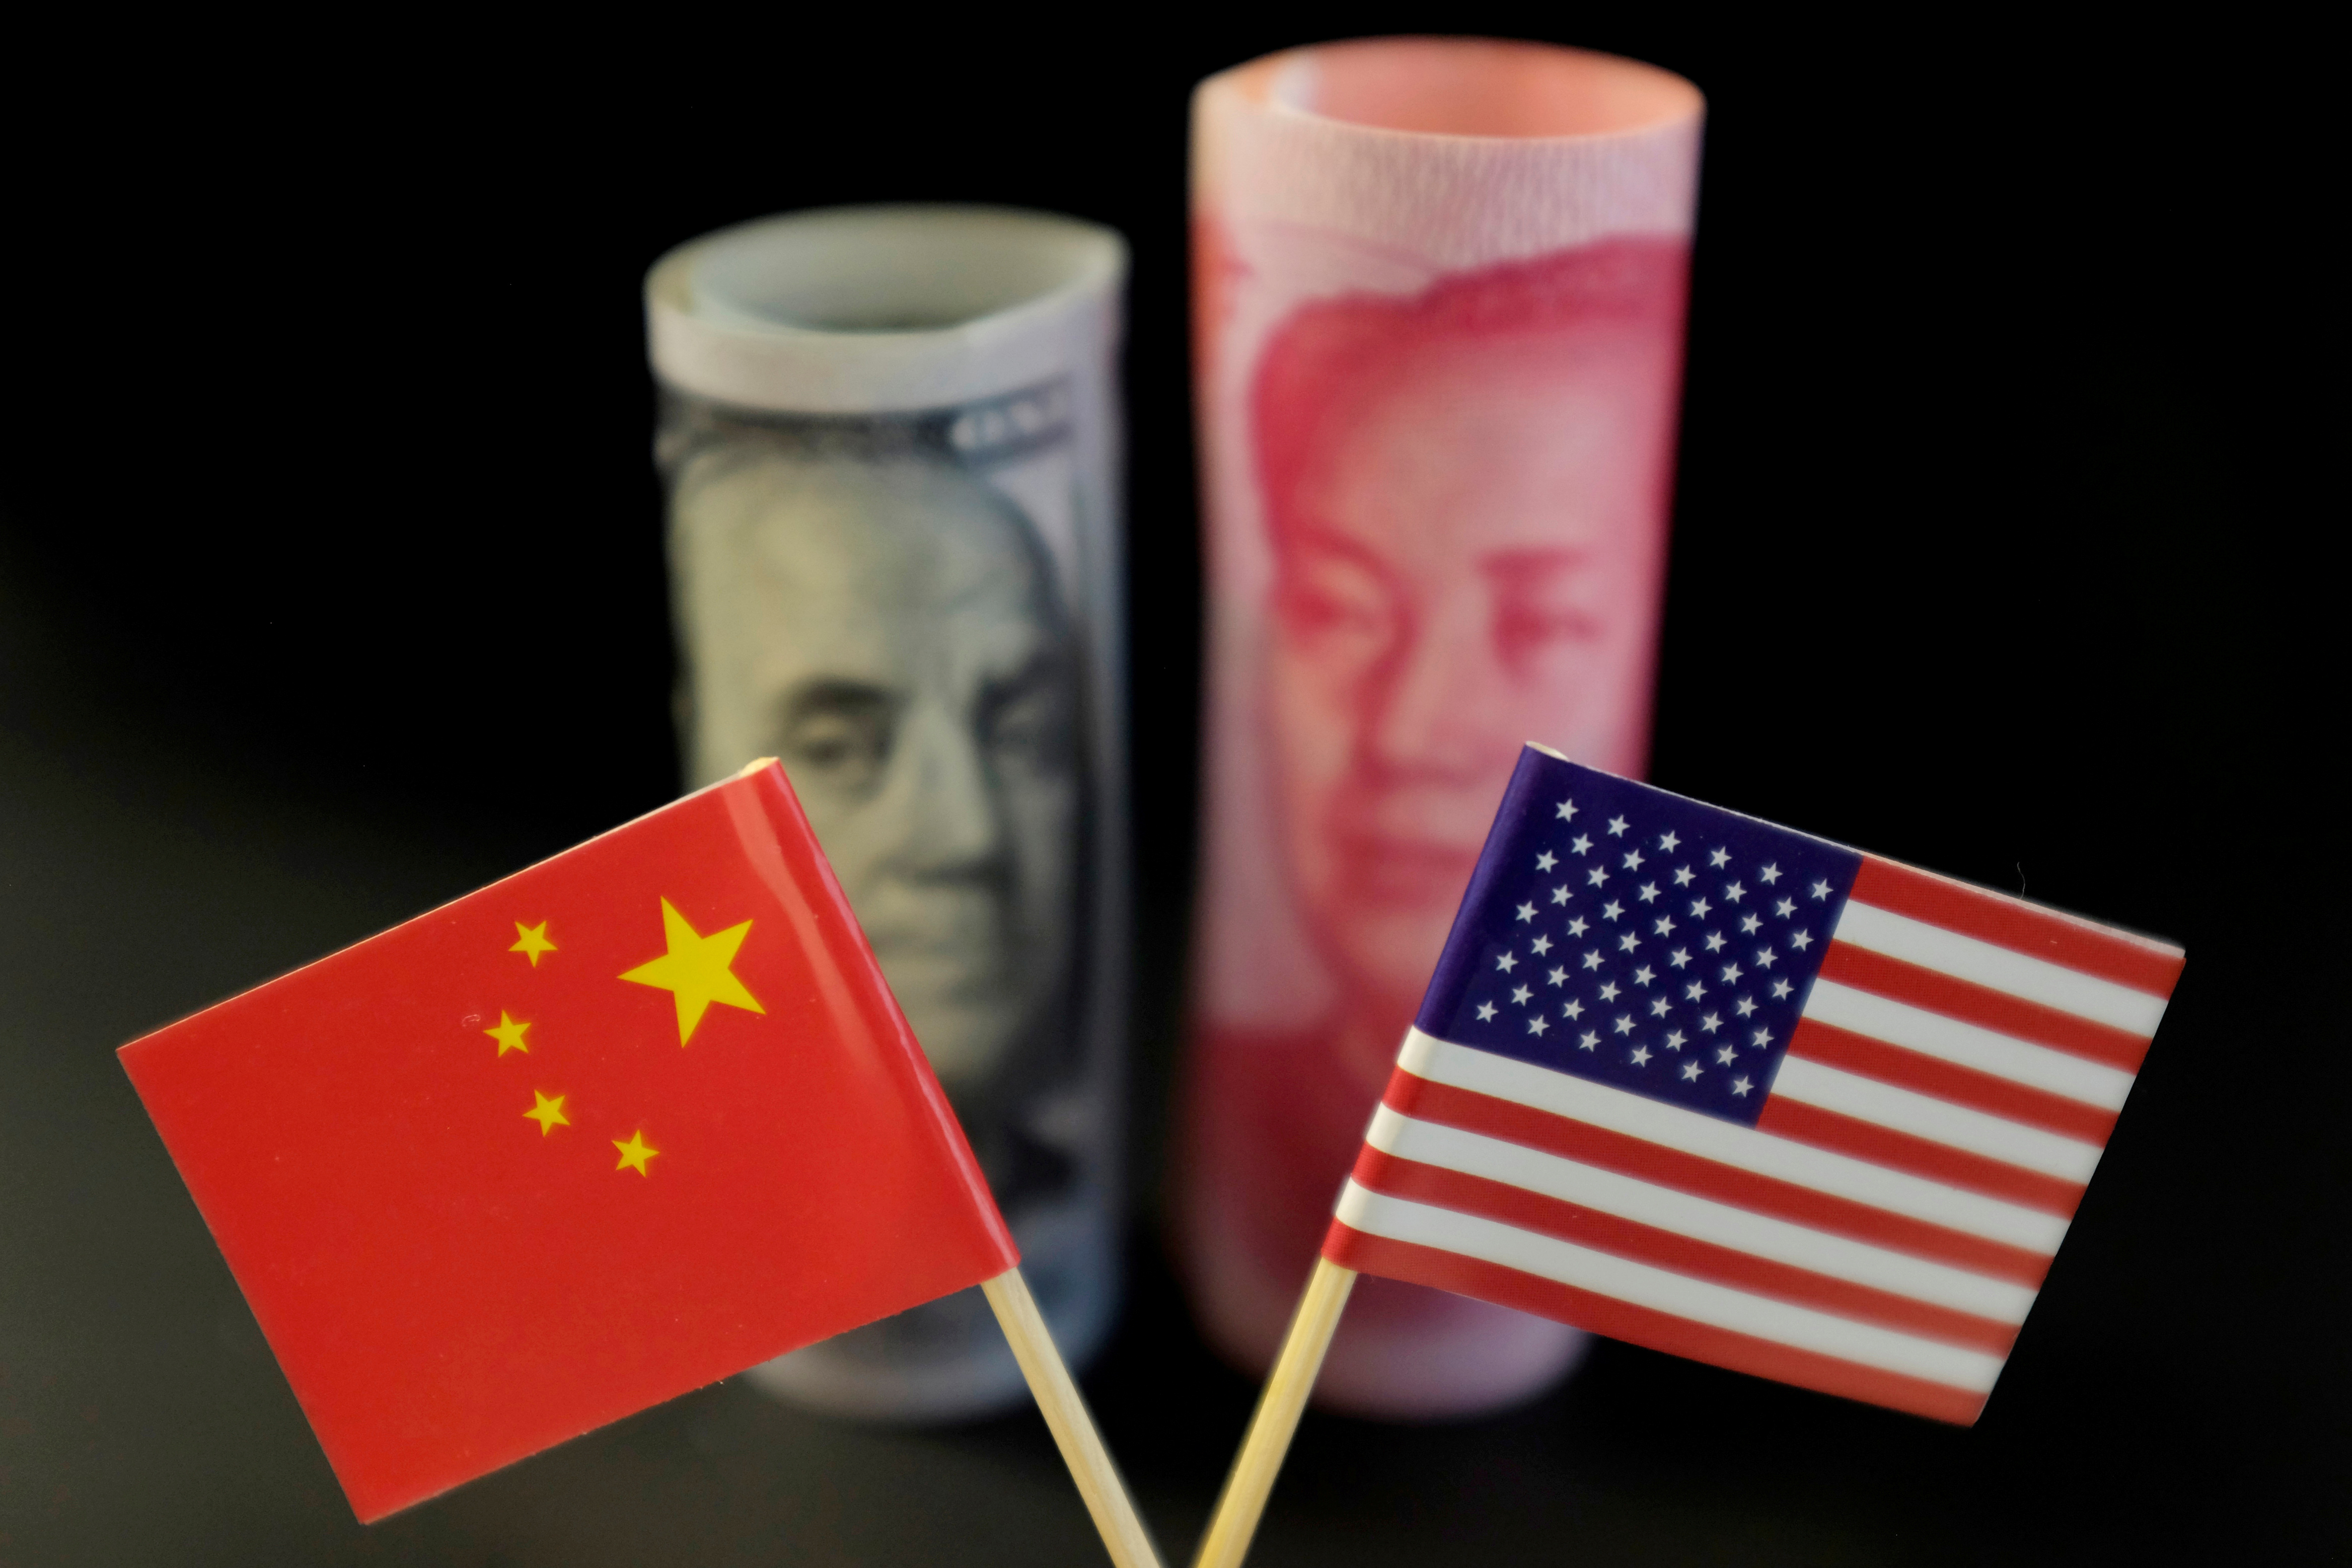 U.S. and Chinese flags are seen in front of a U.S. dollar banknote featuring American founding father Benjamin Franklin and a China's yuan banknote featuring late Chinese chairman Mao Zedong in this illustration picture taken May 20, 2019. REUTERS/Jason Lee/Illustration